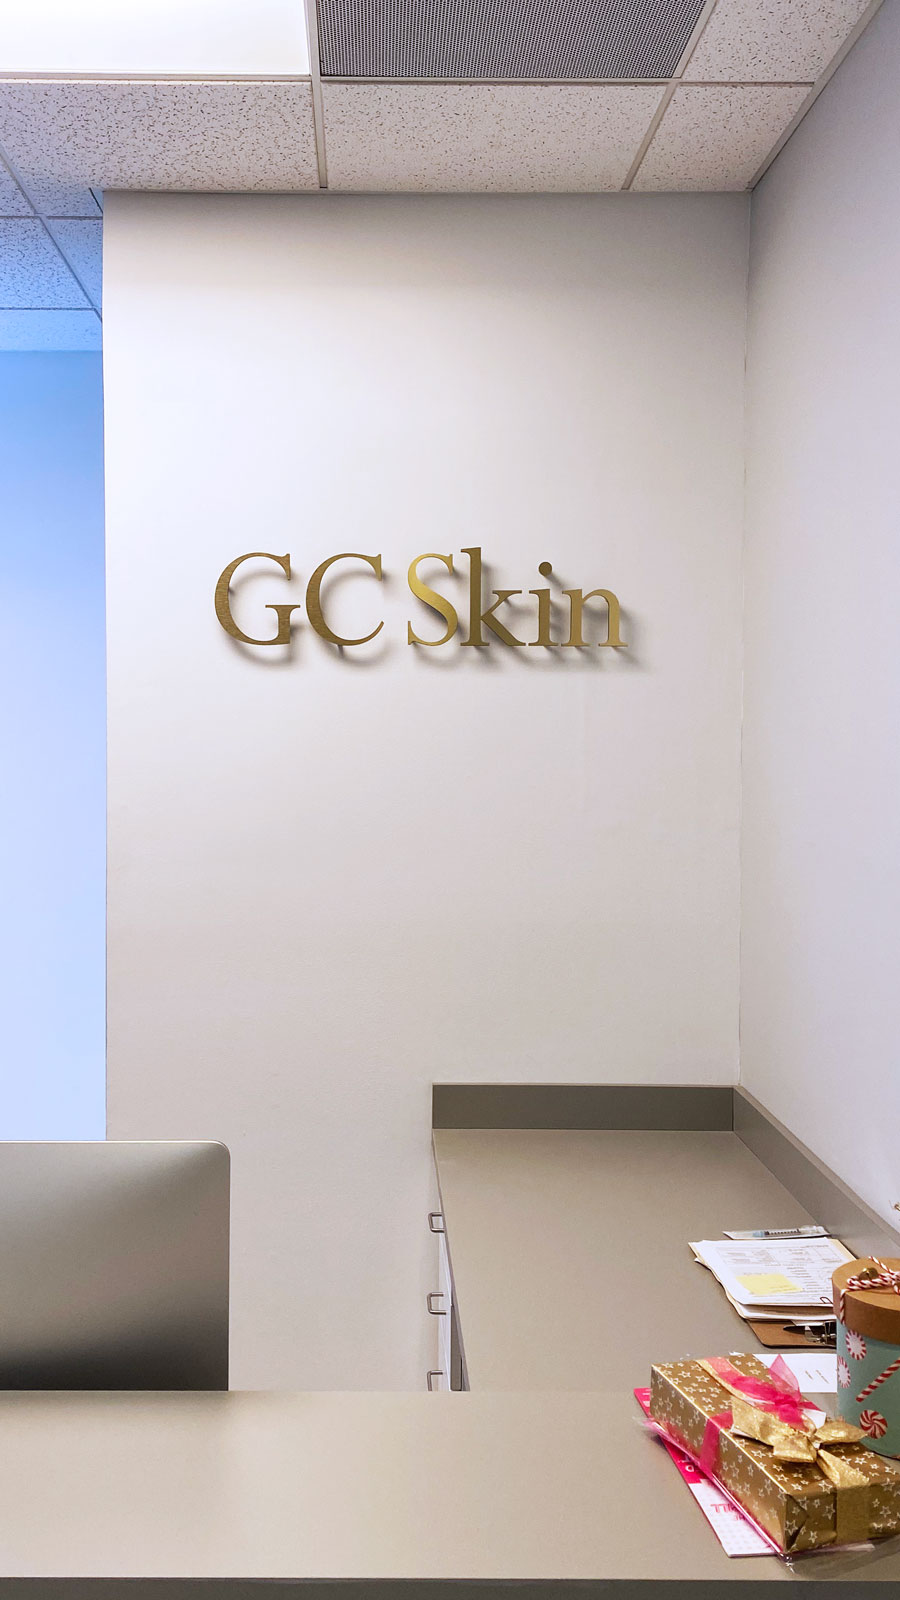 GC Skin office interior pin-mounted 3D letters